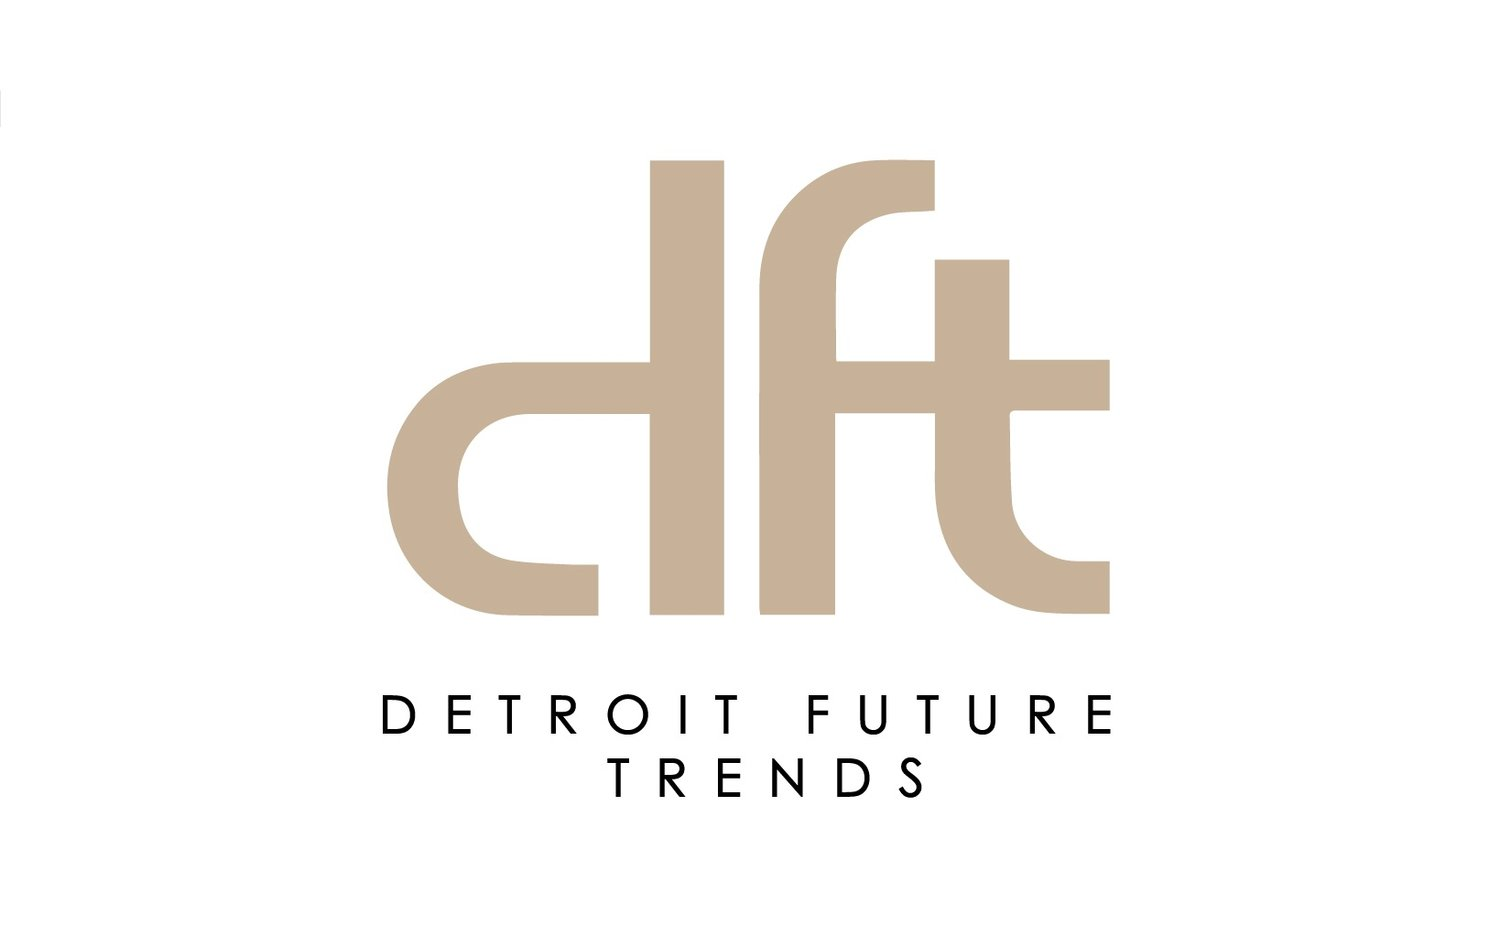 Detroit Future Trends